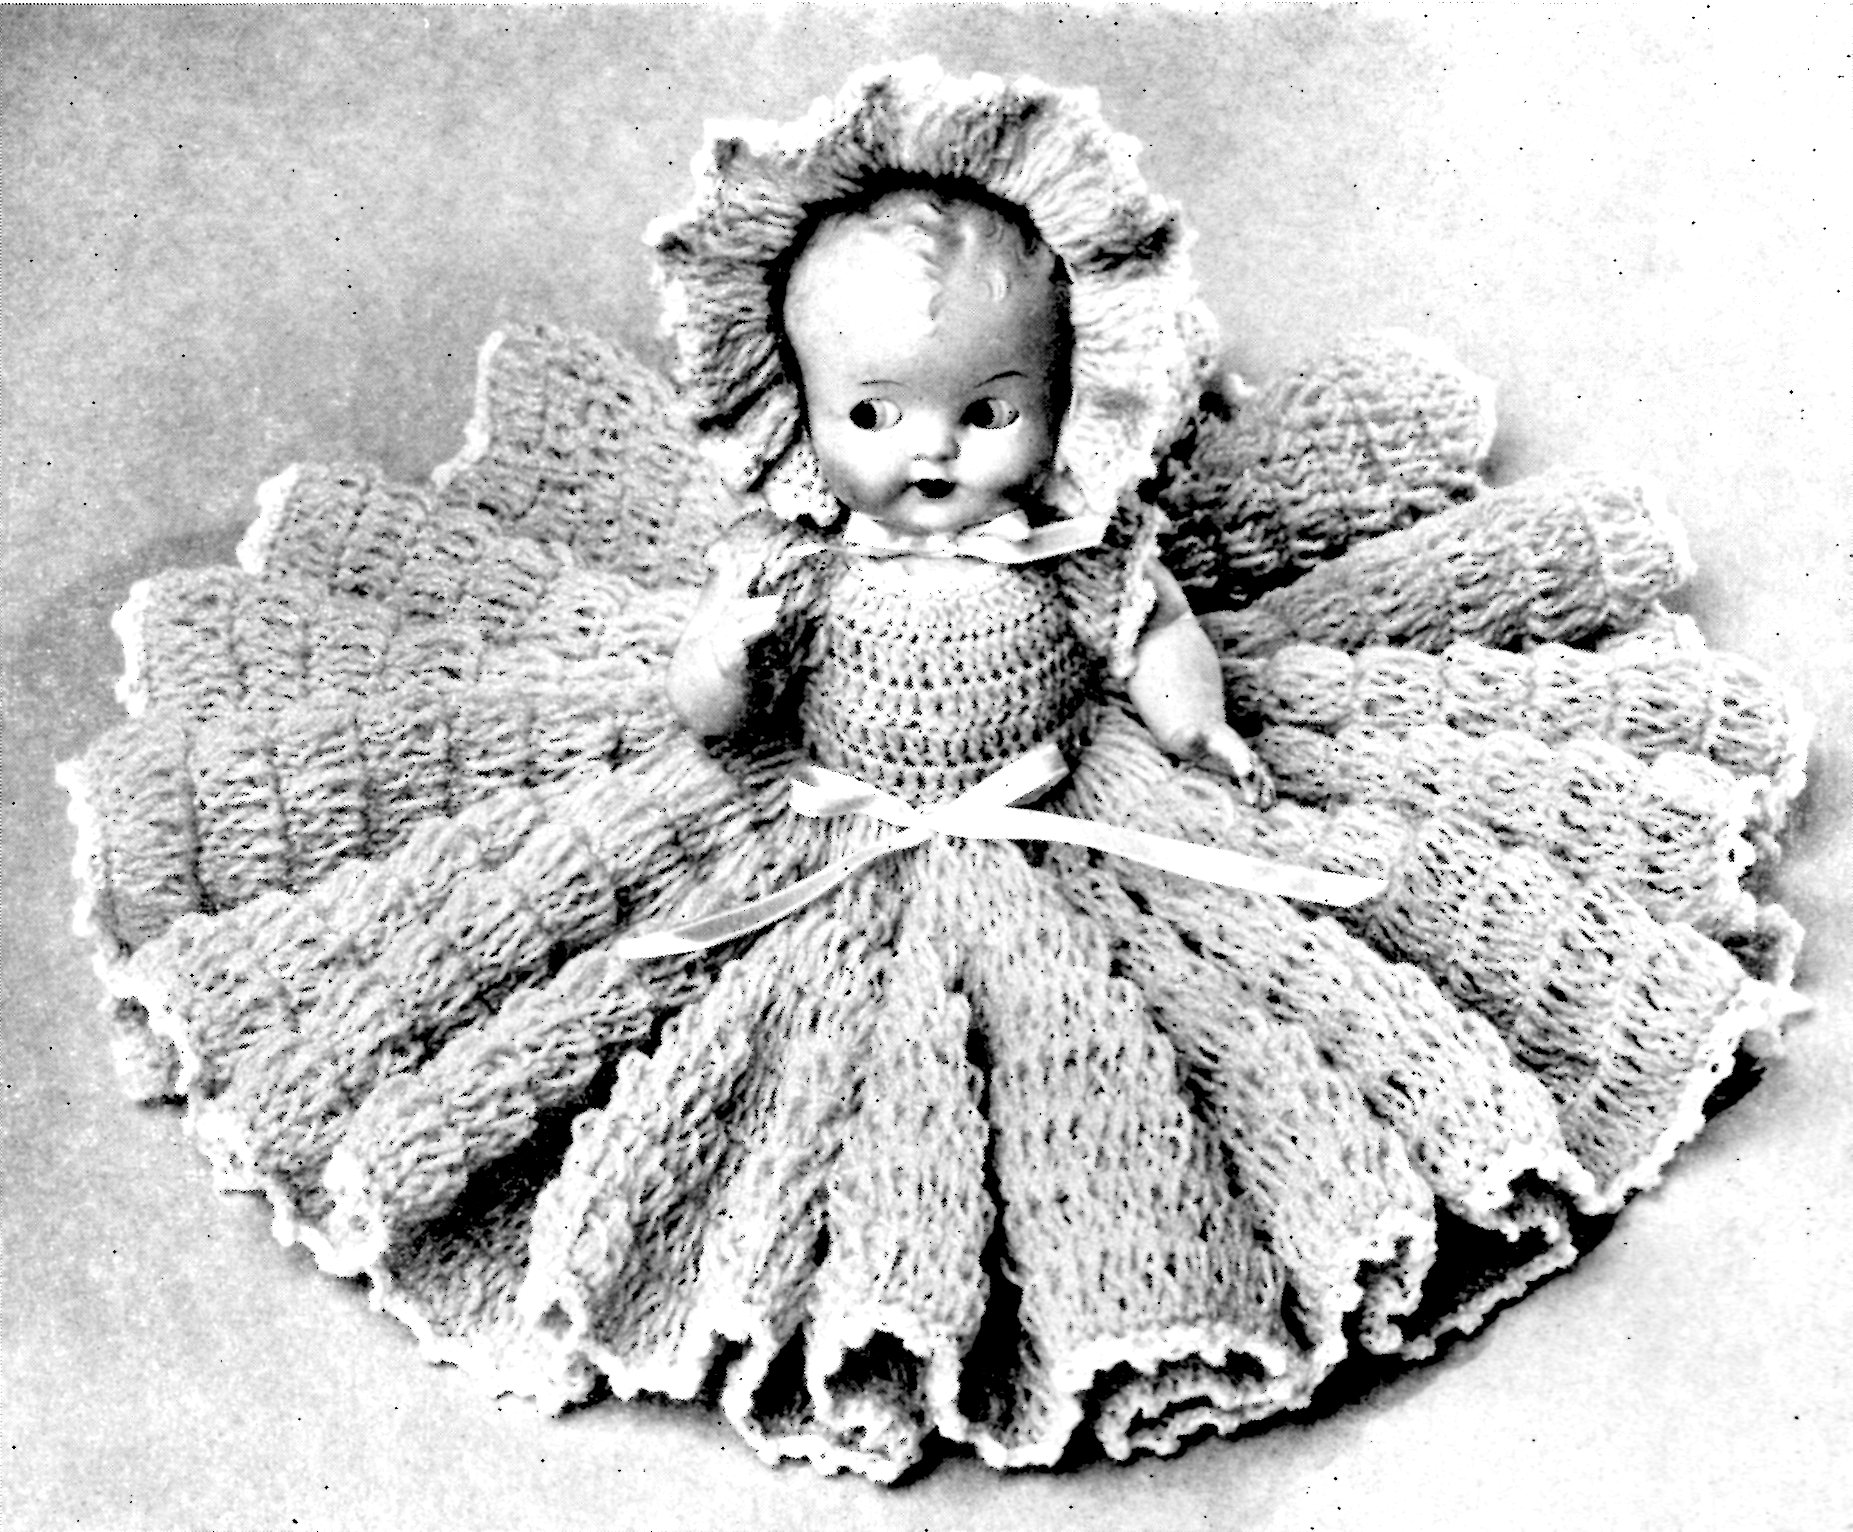 Crochet Pattern Archives - Vintage Crafts and More